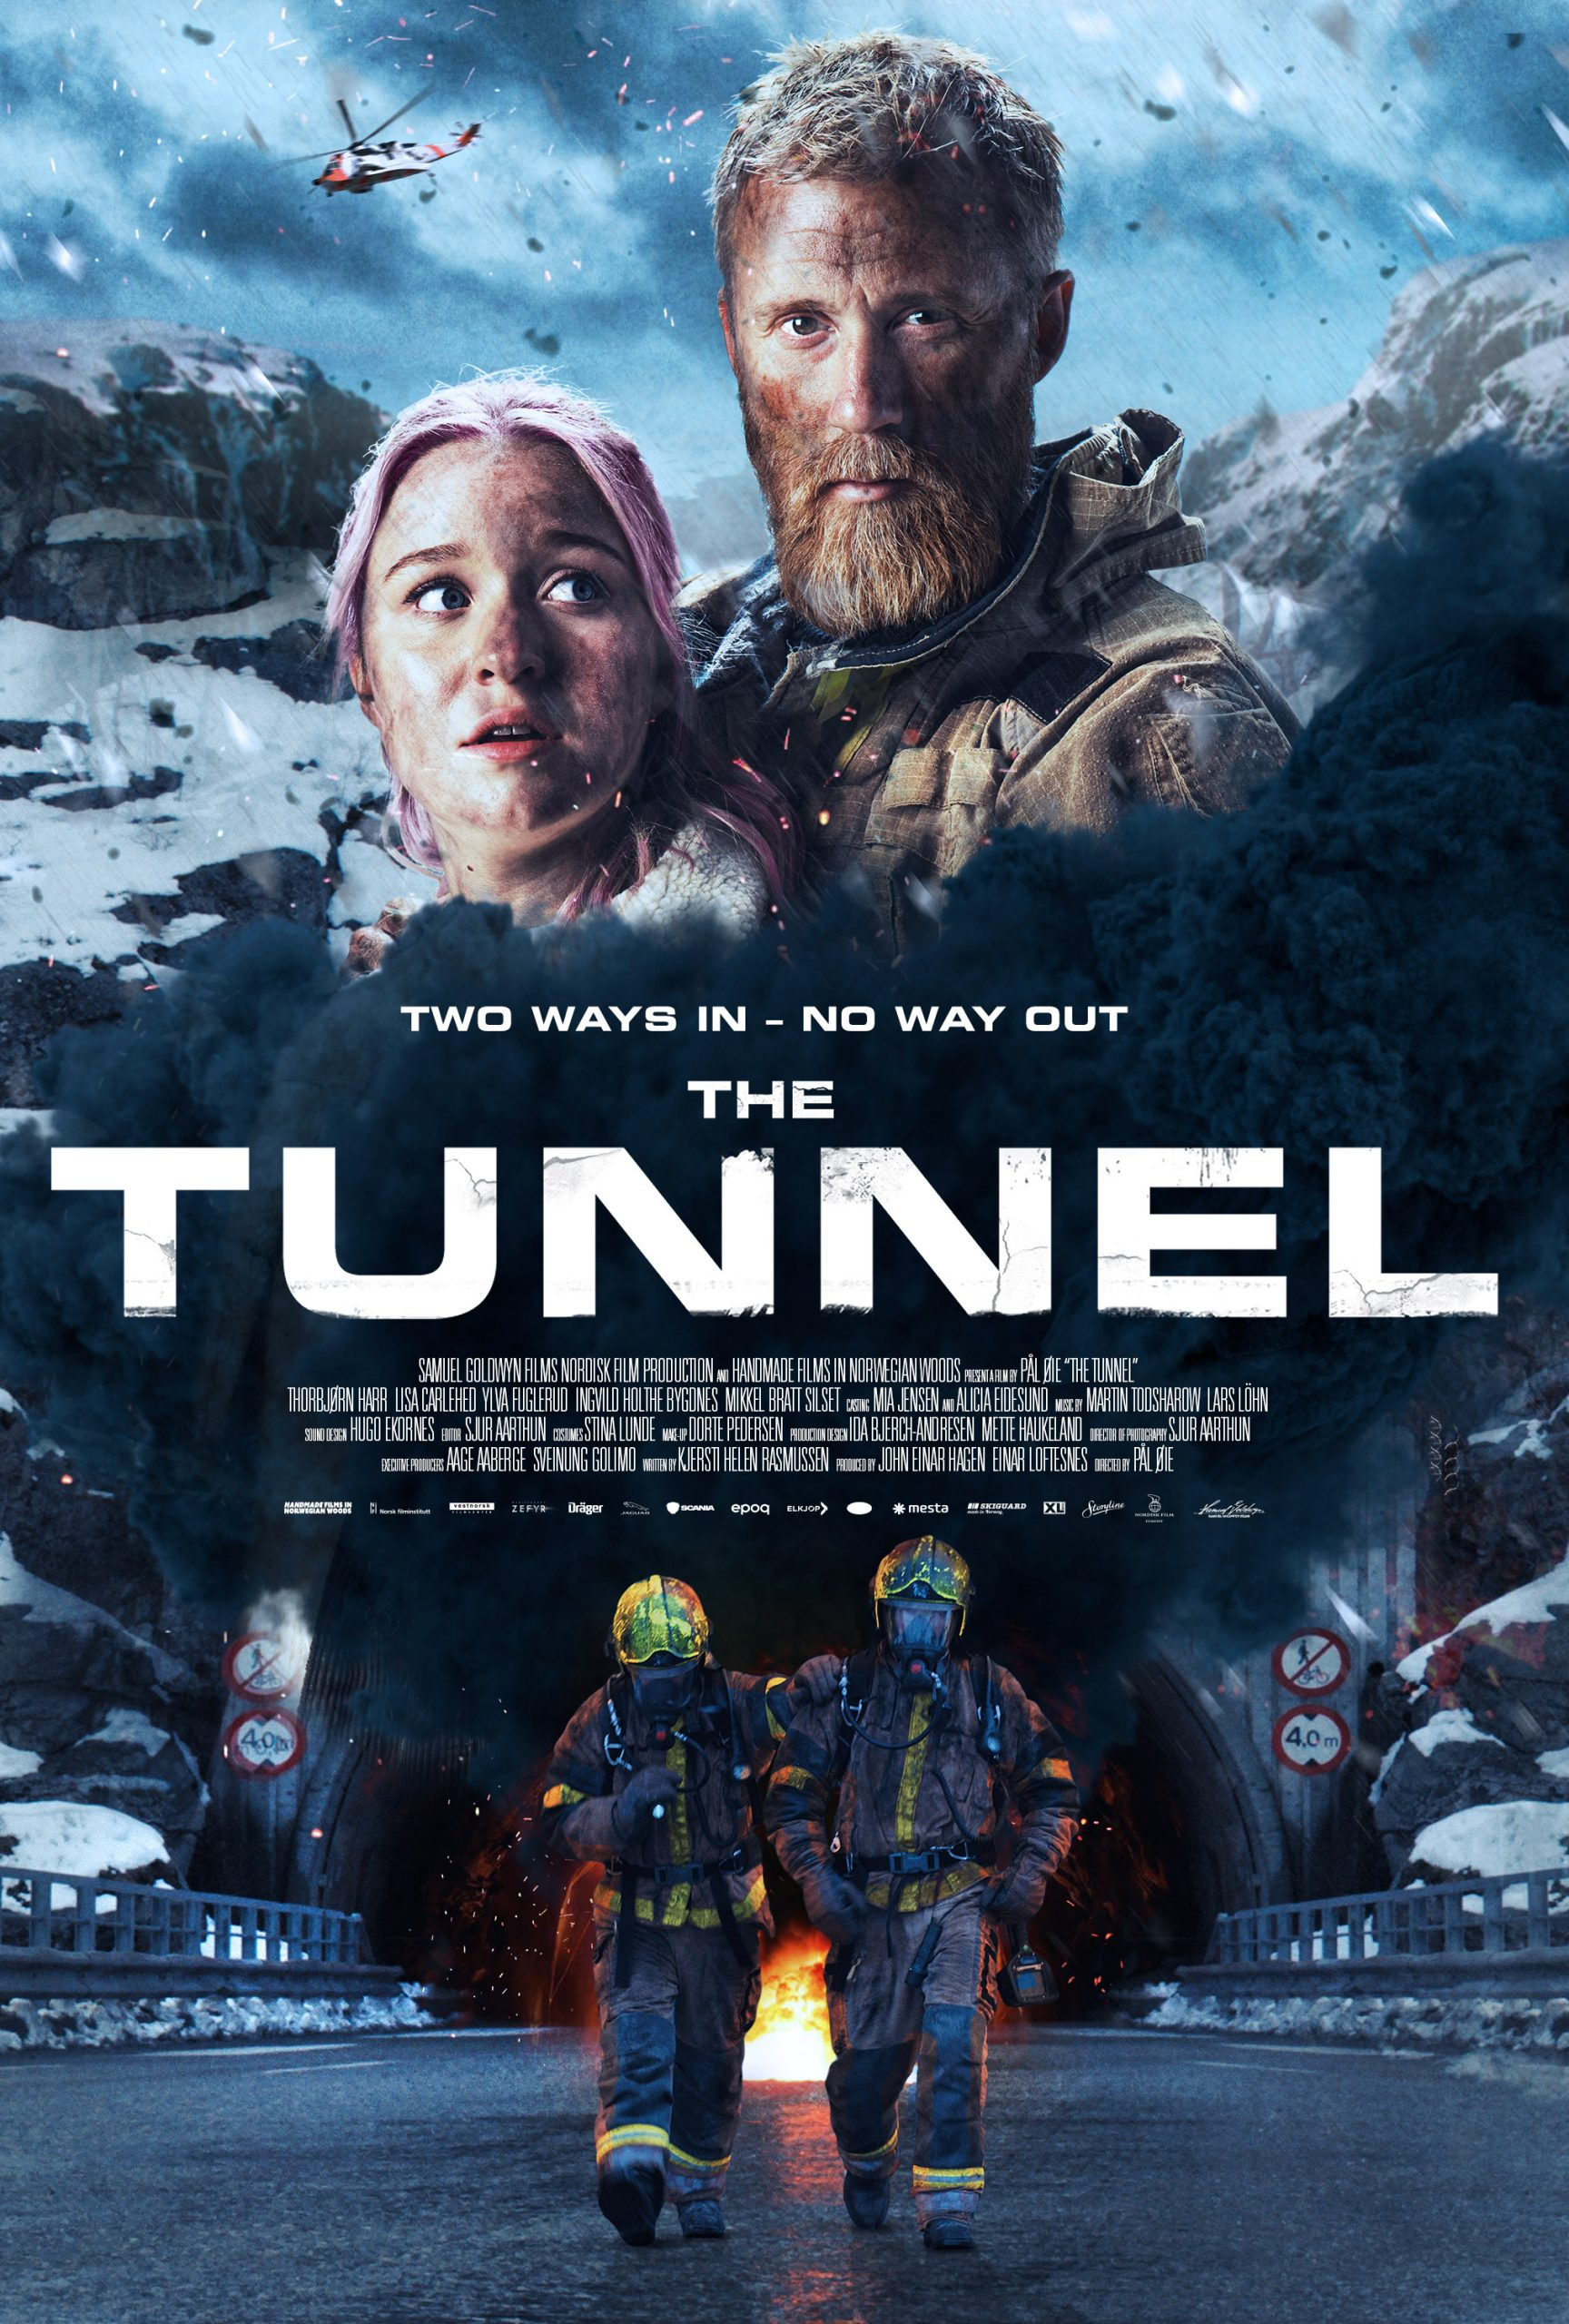 The Tunnel (2020) Full Movie Subtitles | English SRT DOWNLOAD